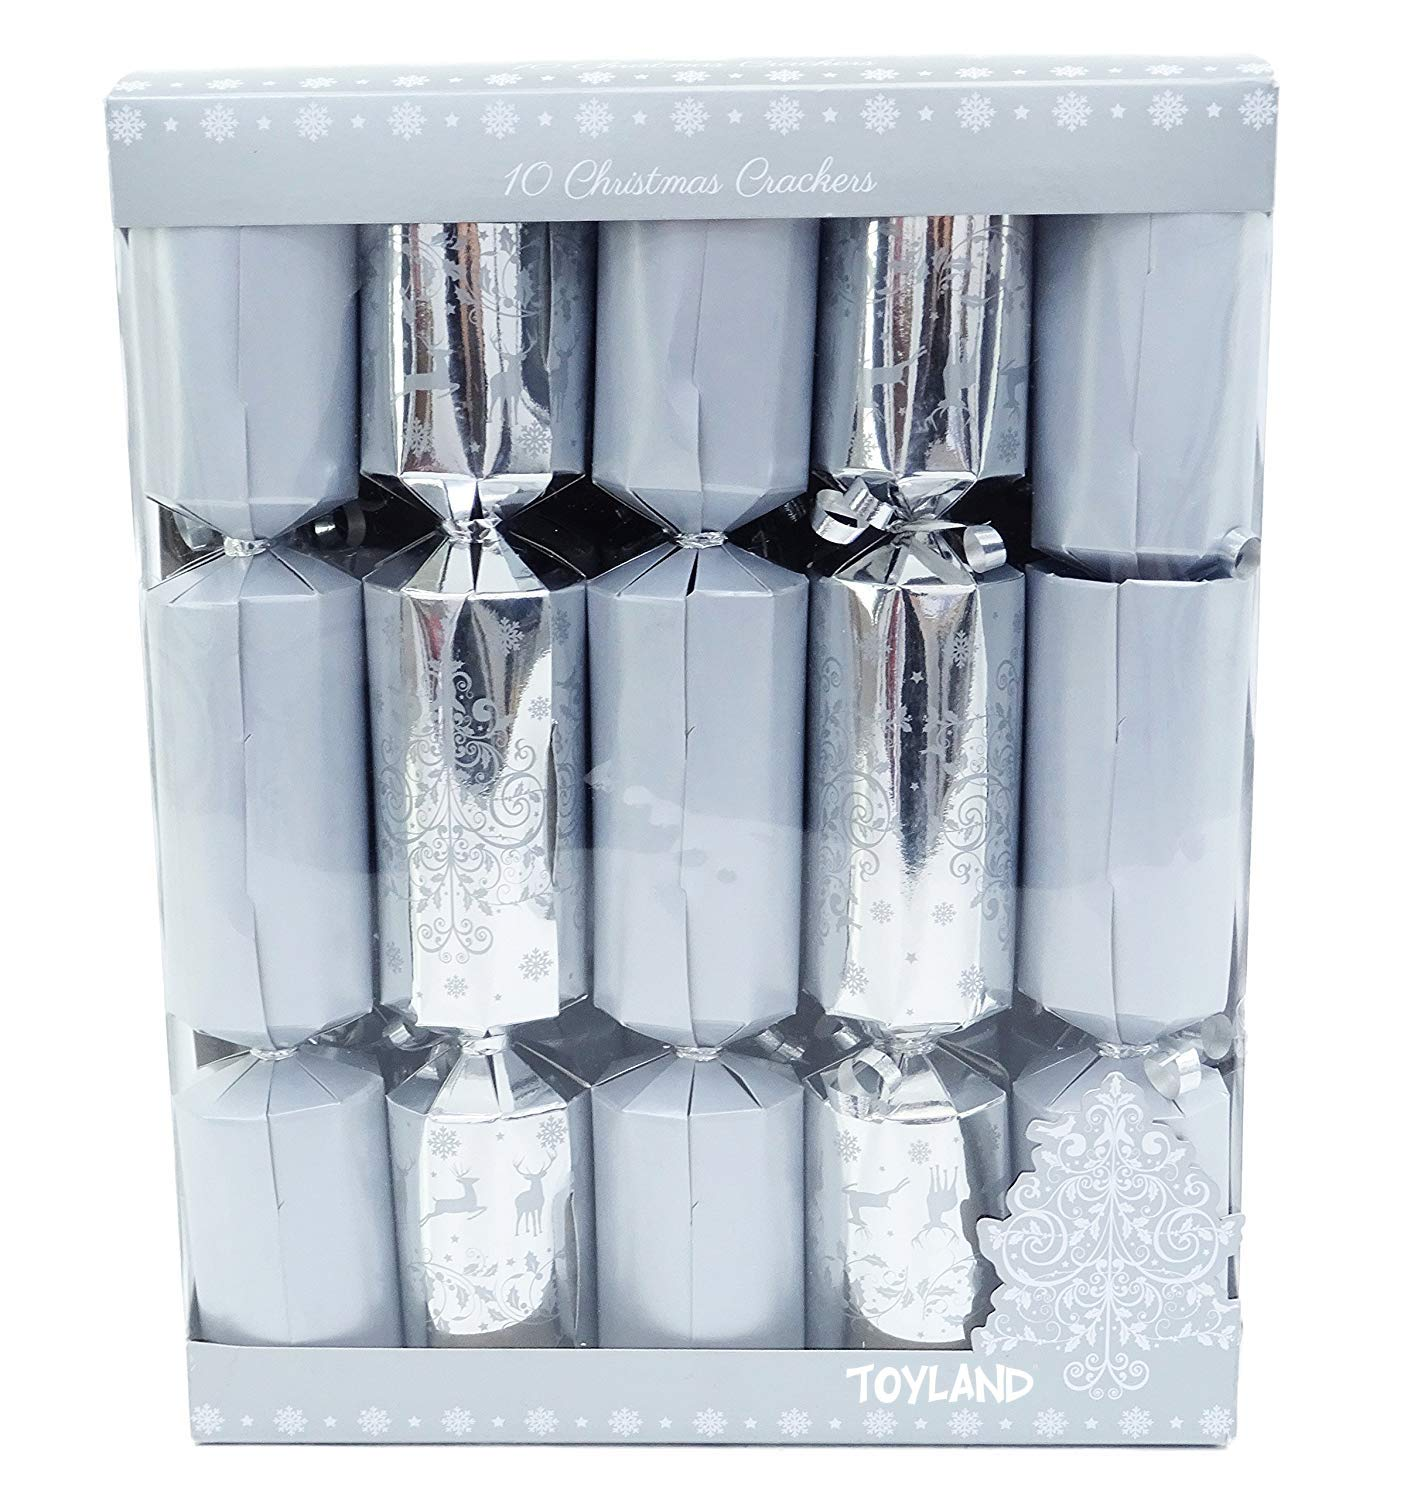 10-Deluxe-Silver-Christmas-Crackers-5-Plain-5-Christmas-Tree-Design